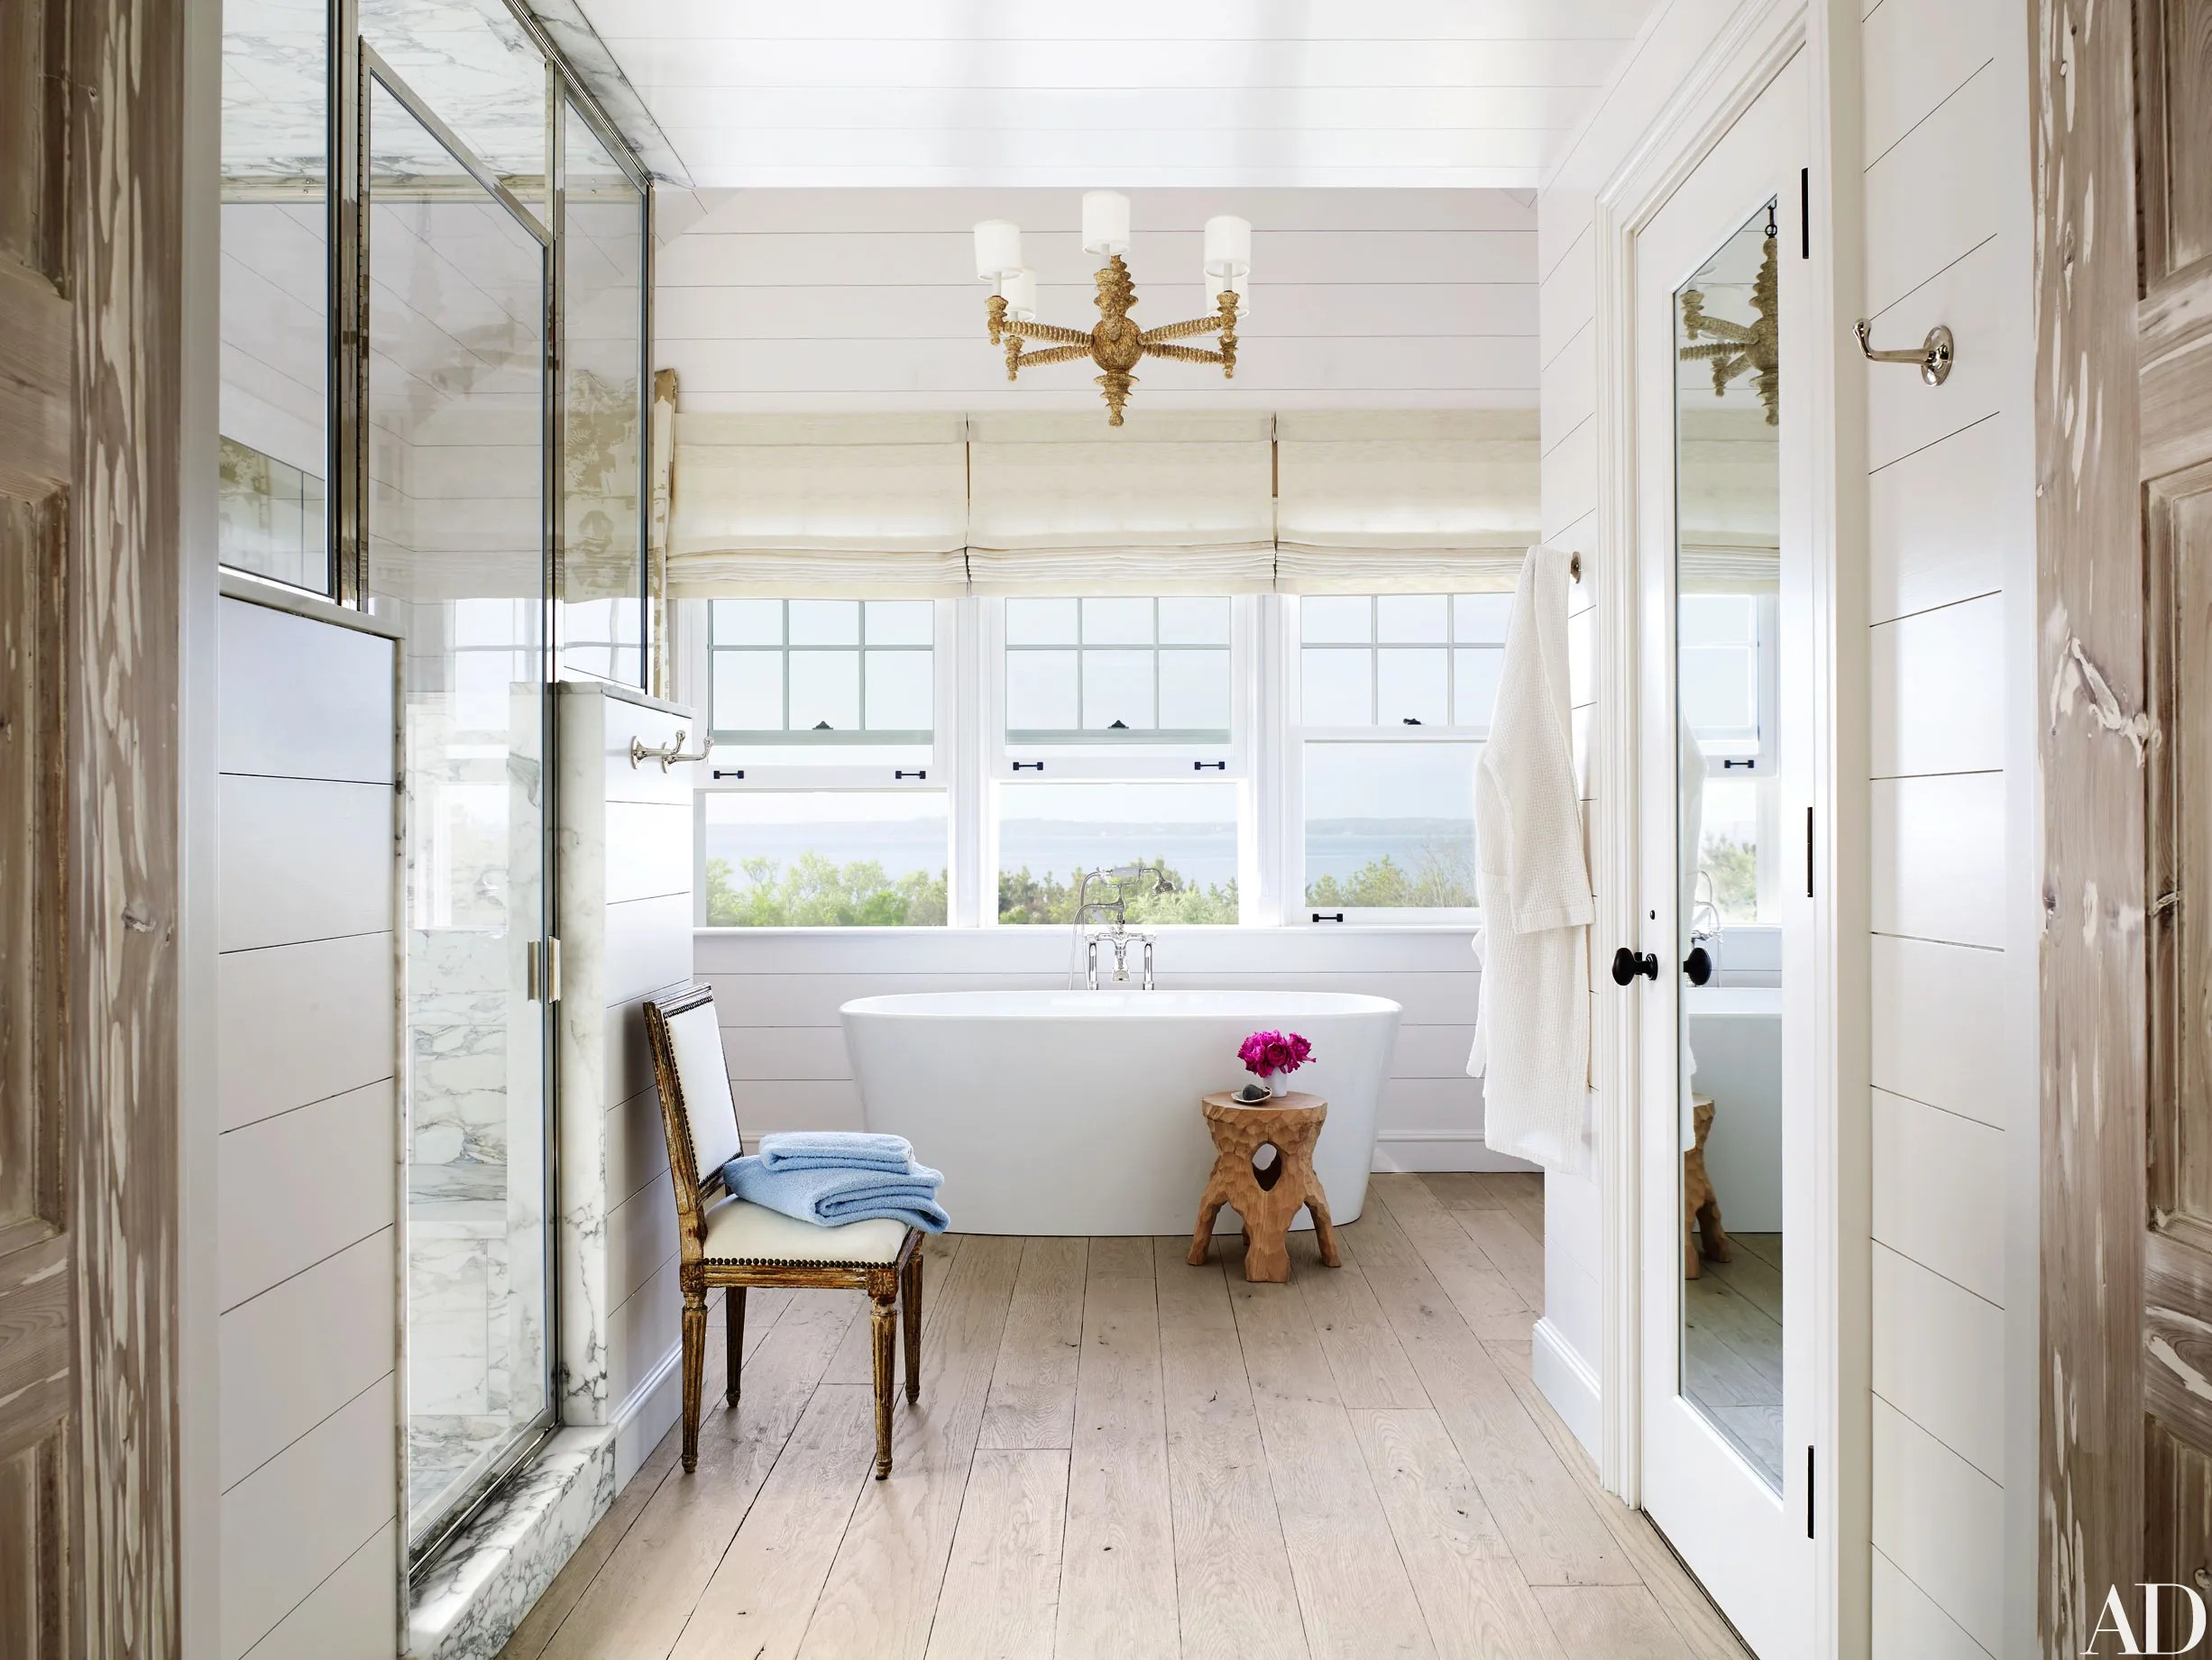 Bathroom Home Interior Design 37 Bathroom Design Ideas To Inspire Your Next Renovation